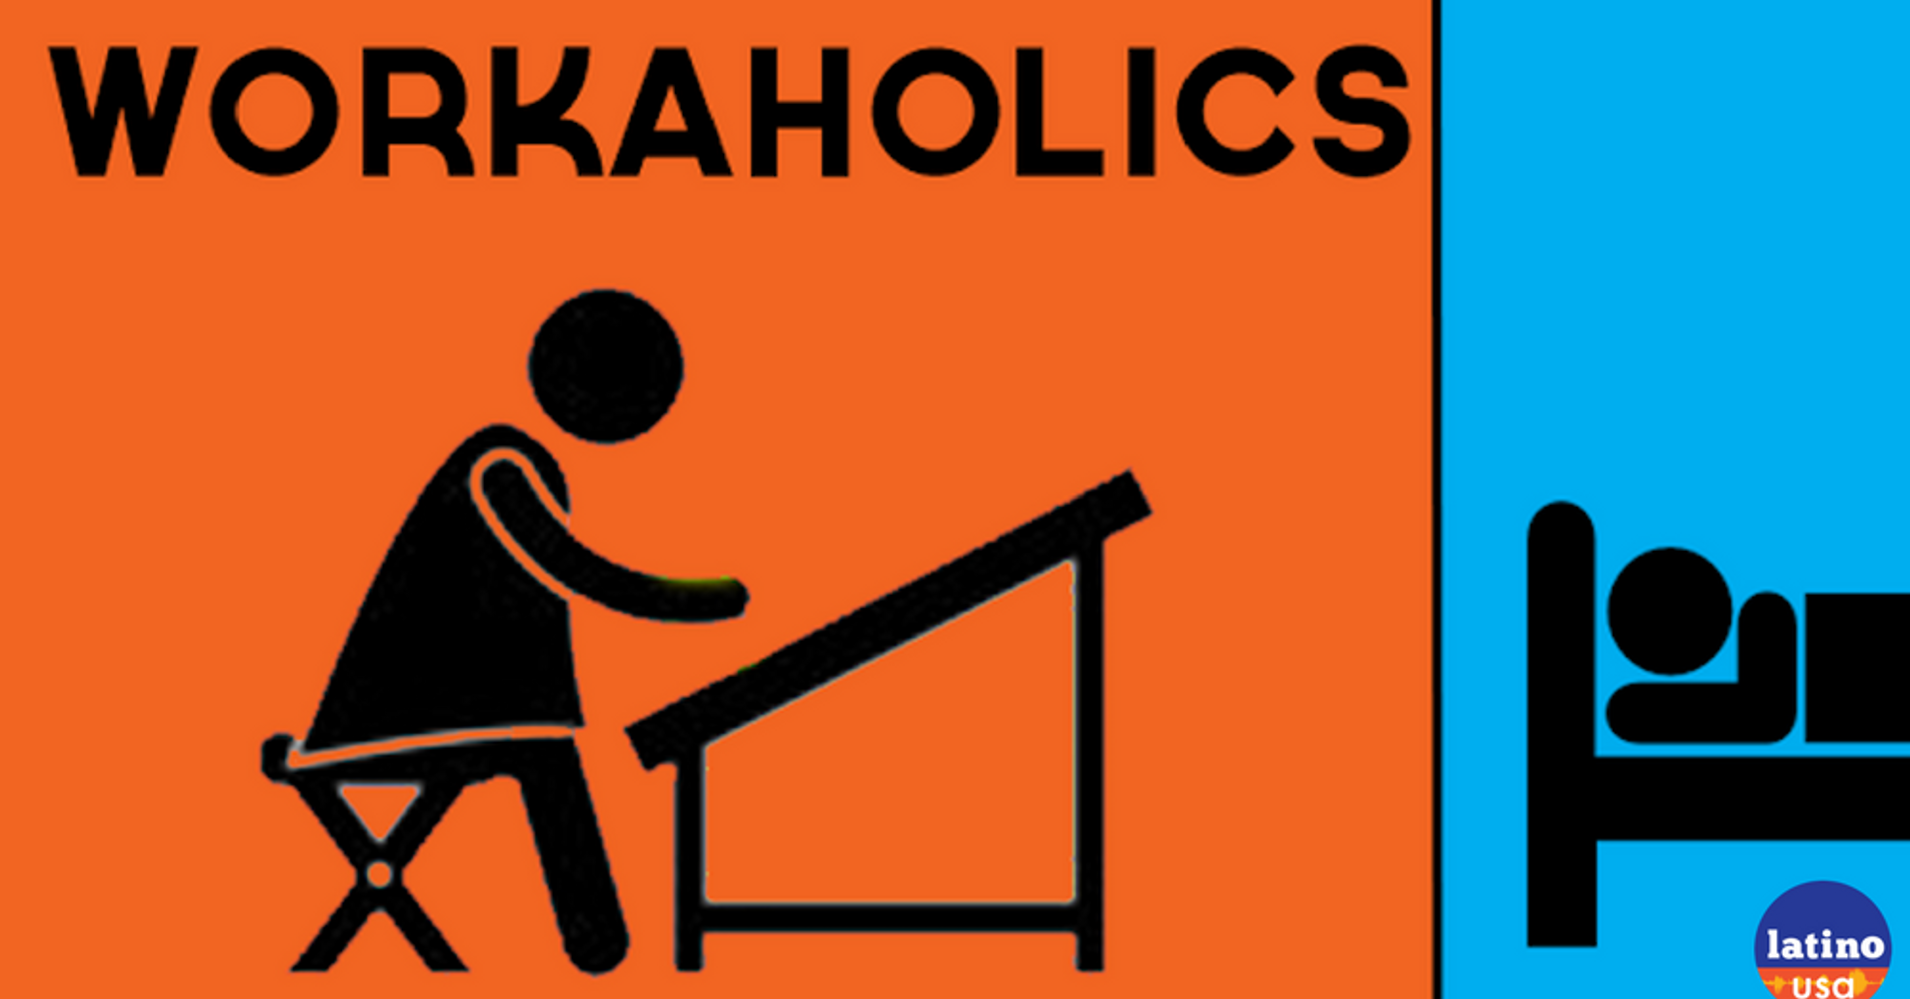 effect of workaholism The dangers of workaholism chris leitch share like drinking and doing drugs, working extra-long hours can be a way of coping with emotional discomfort, and the effects it has on our personal and professional lives are plentifully overwhelming if left untreated.